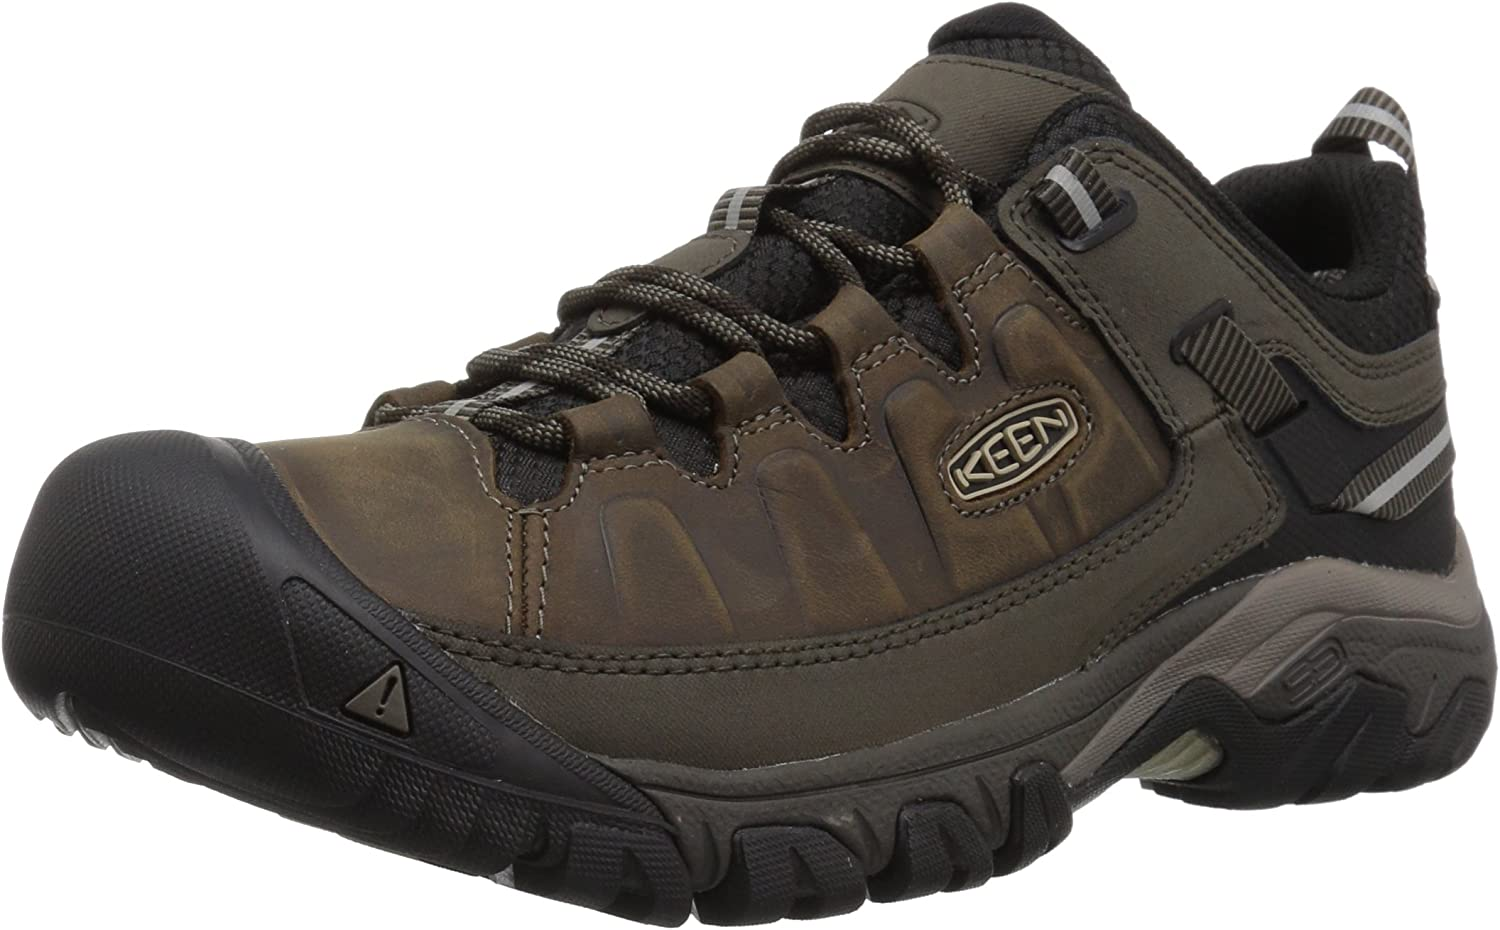 KEEN Hiking Shoes For Men